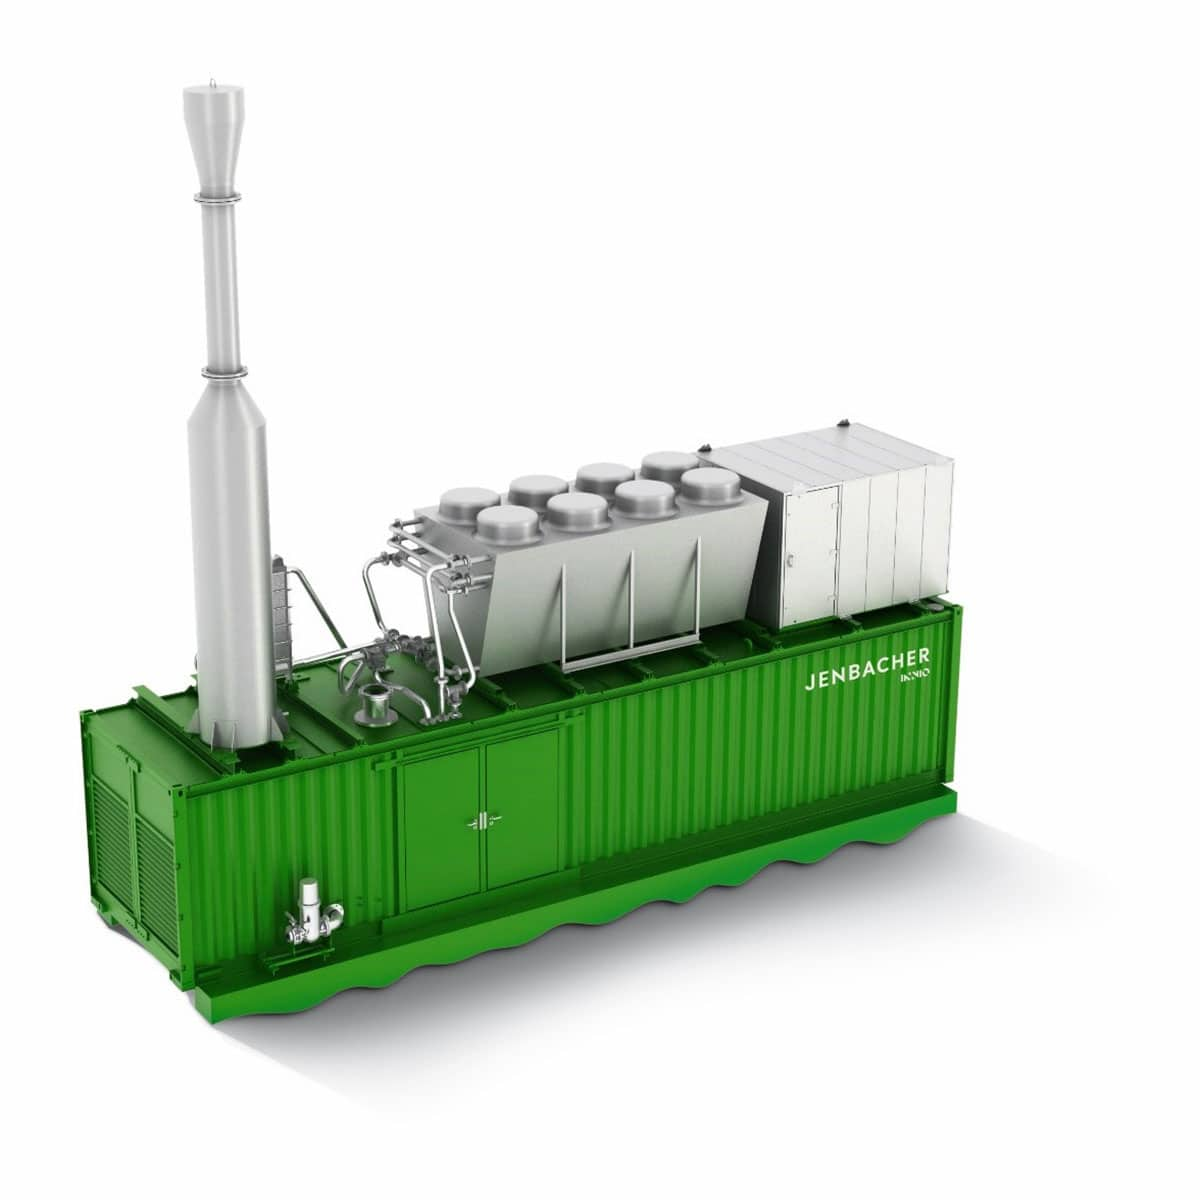 Jenbacher containerised power plant based on 4 series